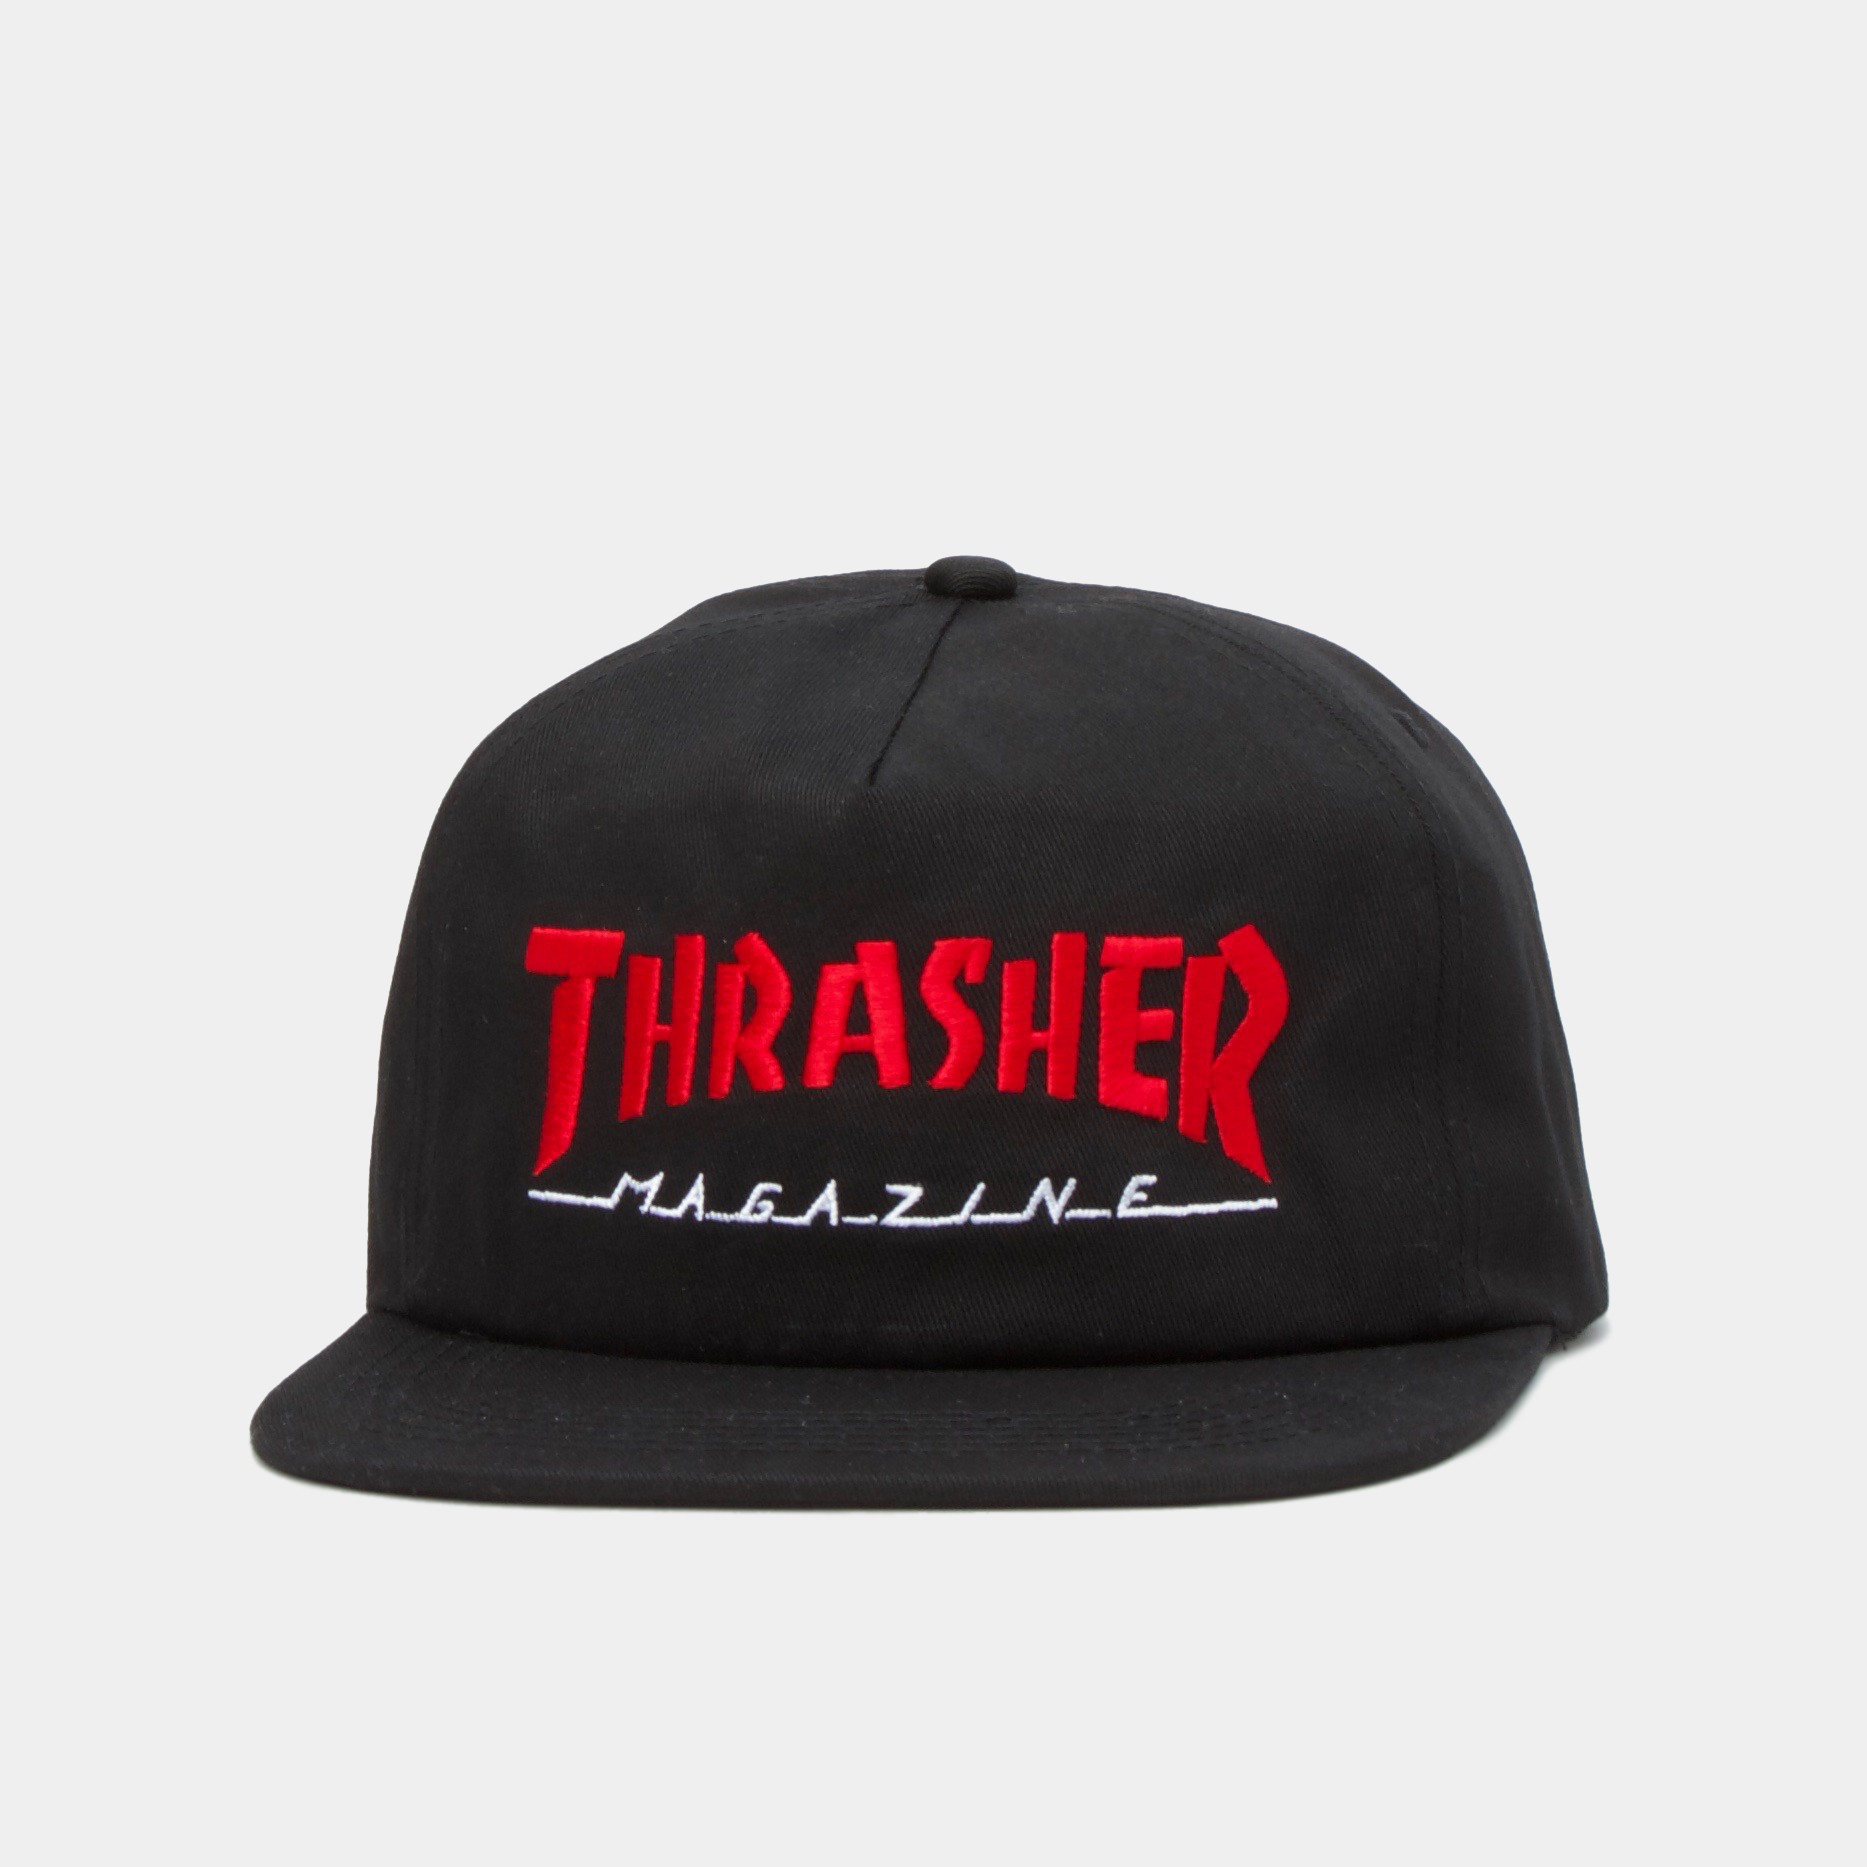 Thrasher snapback MAGAZINE LOGO TWO-TONE HAT BLACK/RED